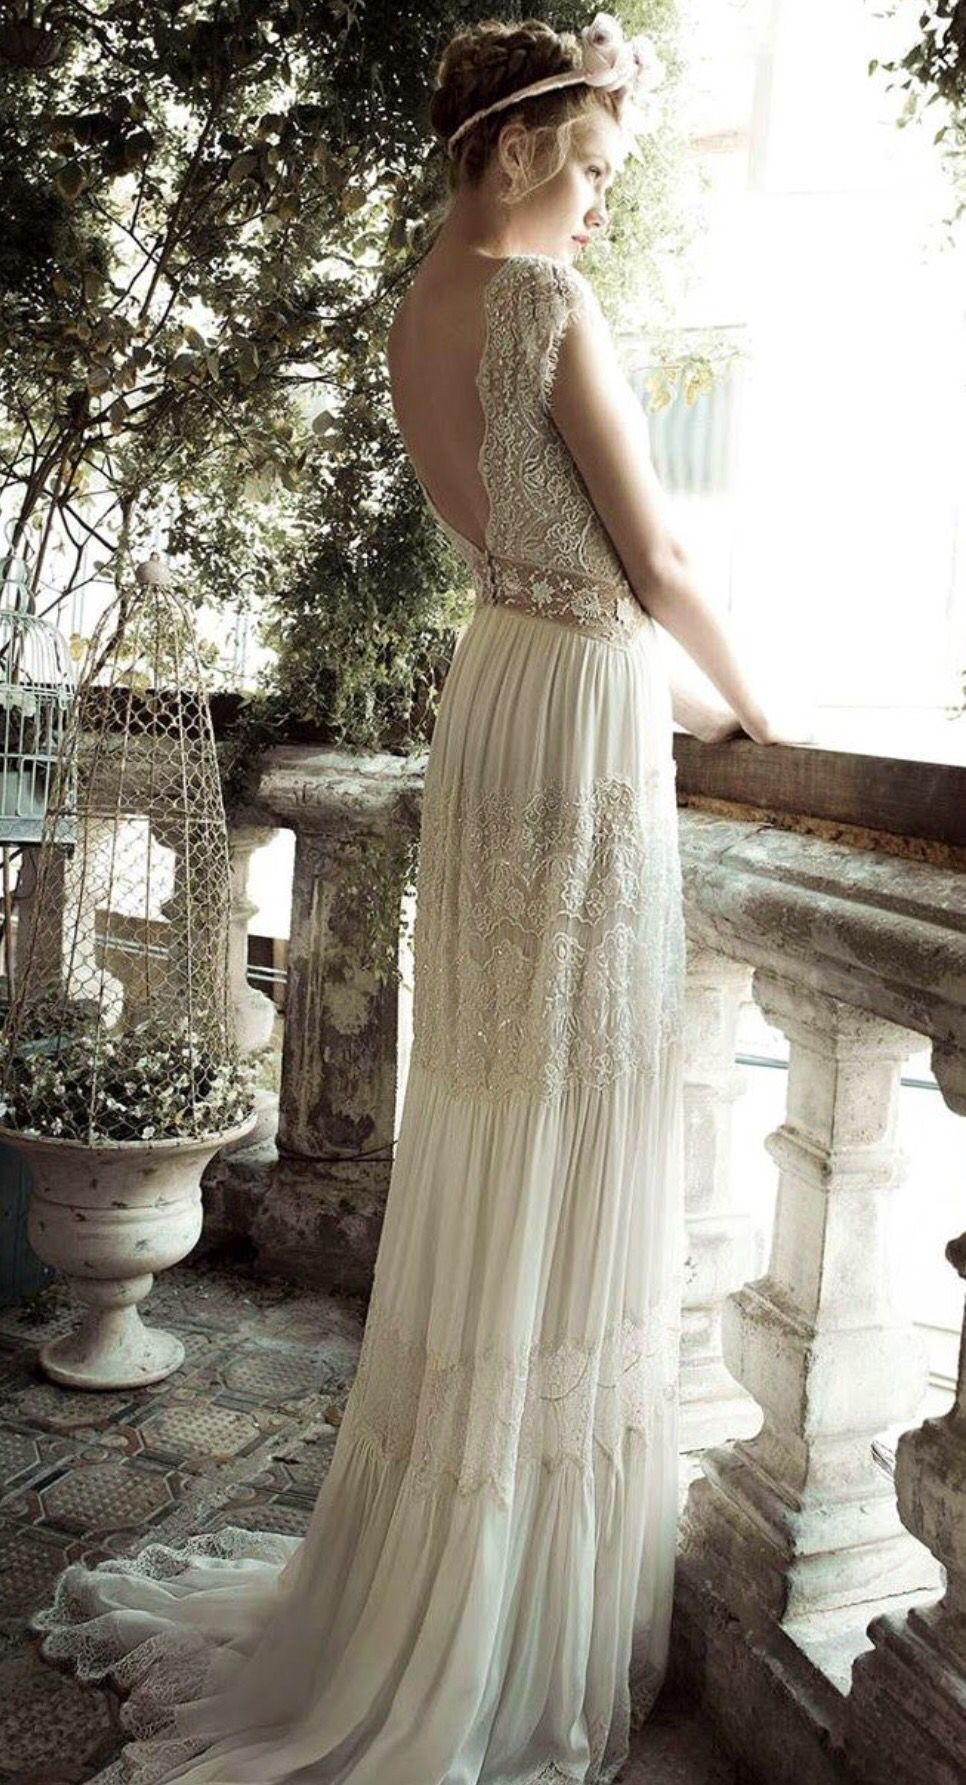 Southern style wedding dresses  Pin by magucf on Dresses  Pinterest  Wedding dress Wedding and